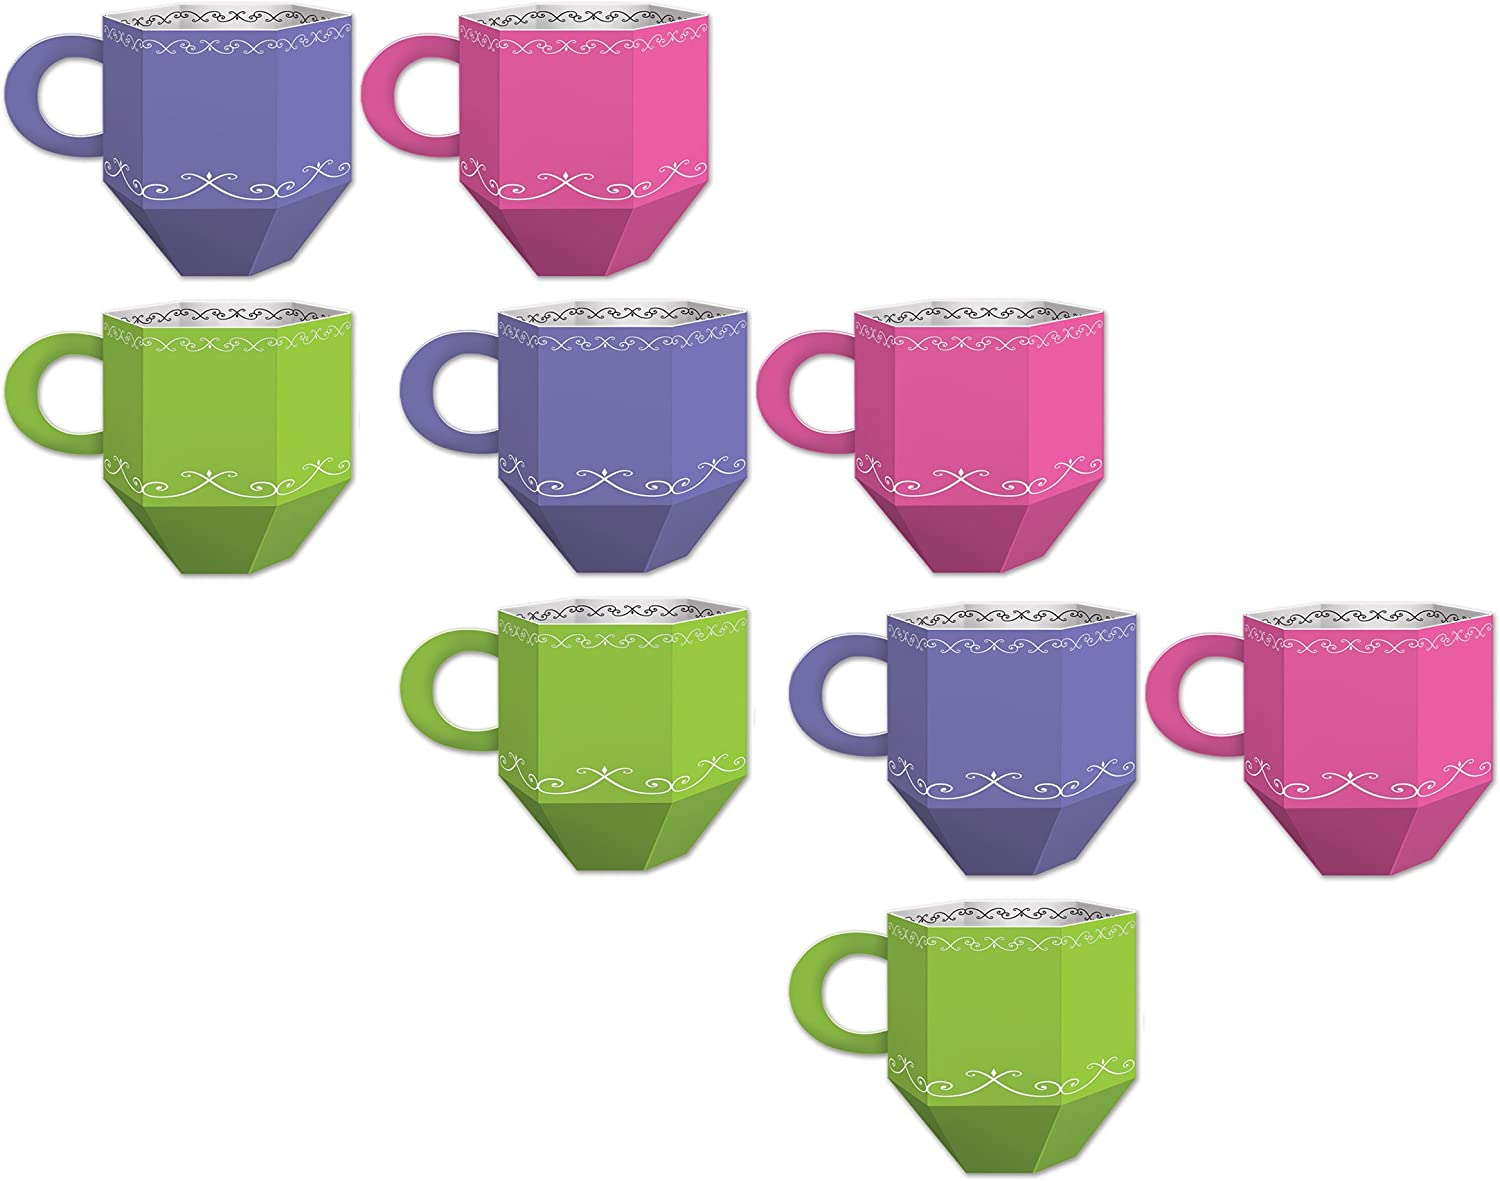 "Beistle 54783, 9 Piece Teacup Favor Boxes, 3.5"" x 4.75"", Purple/Pink/Green/White"